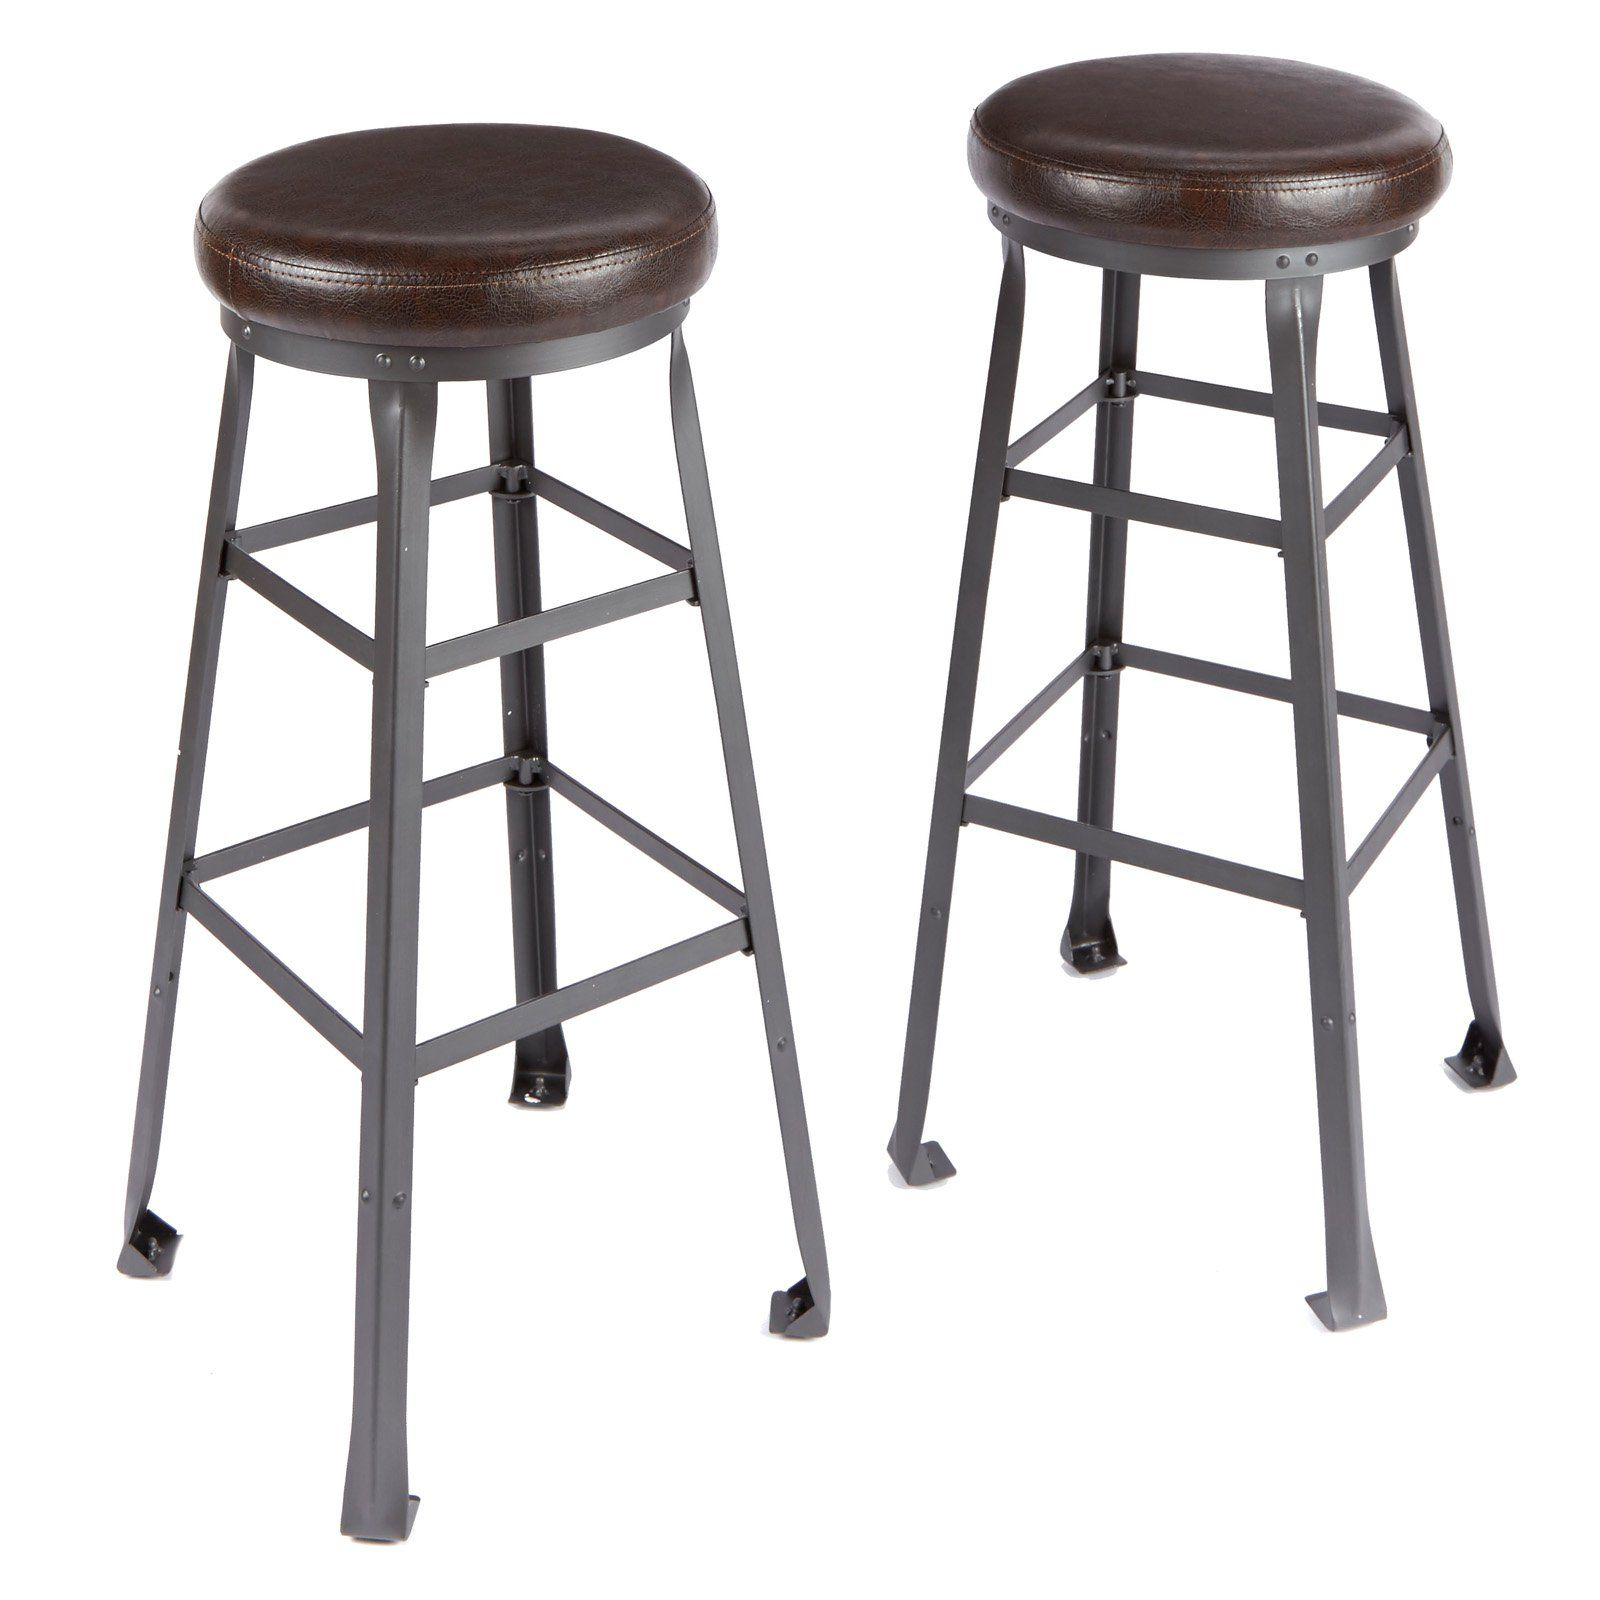 rsa seating bar architect industrial furniture ideas stool restaurant